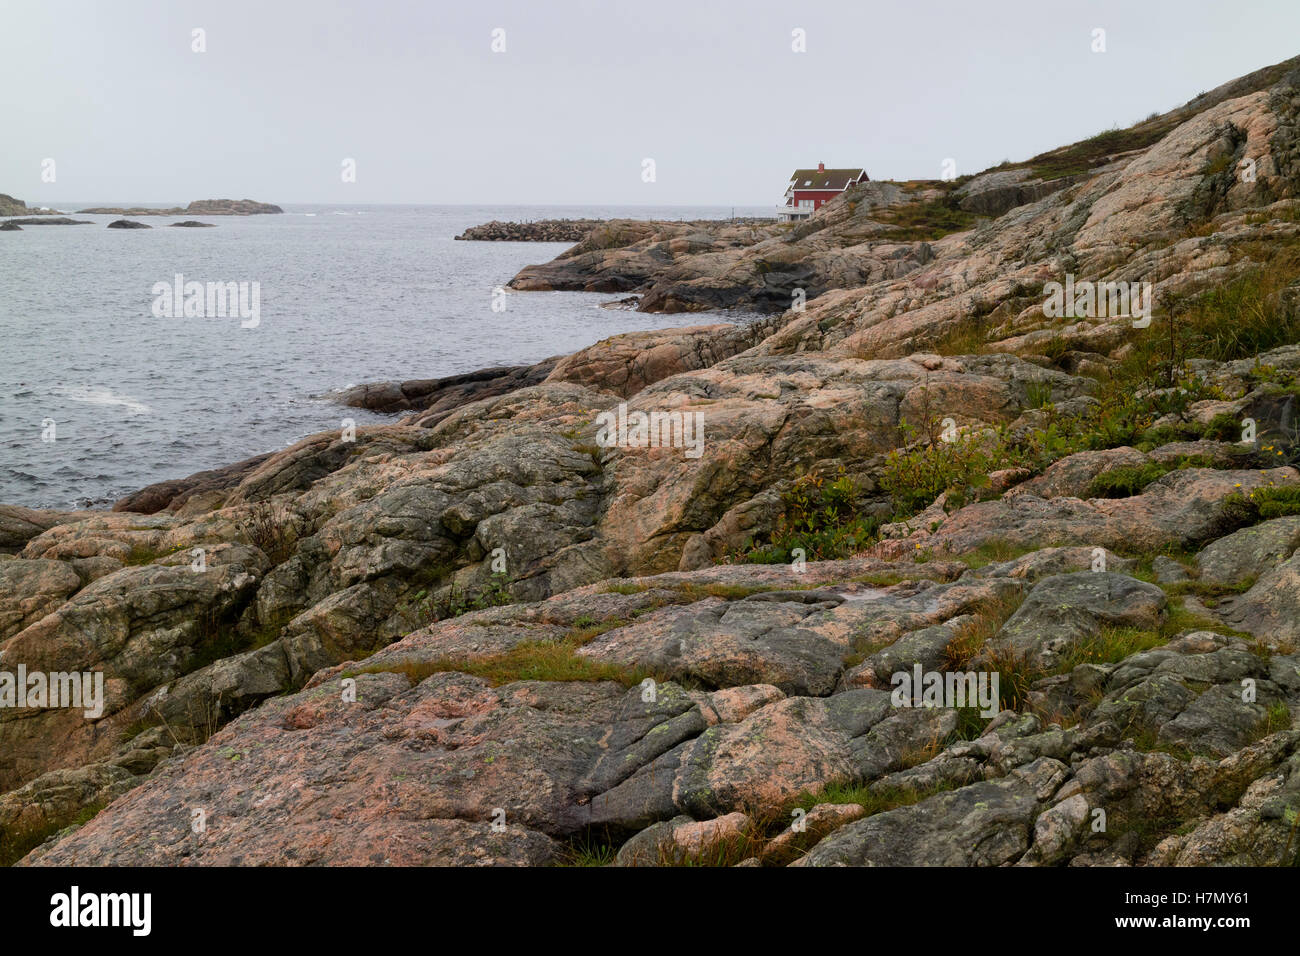 Deserted place near the sea in Lindesnes, Norway - Stock Image